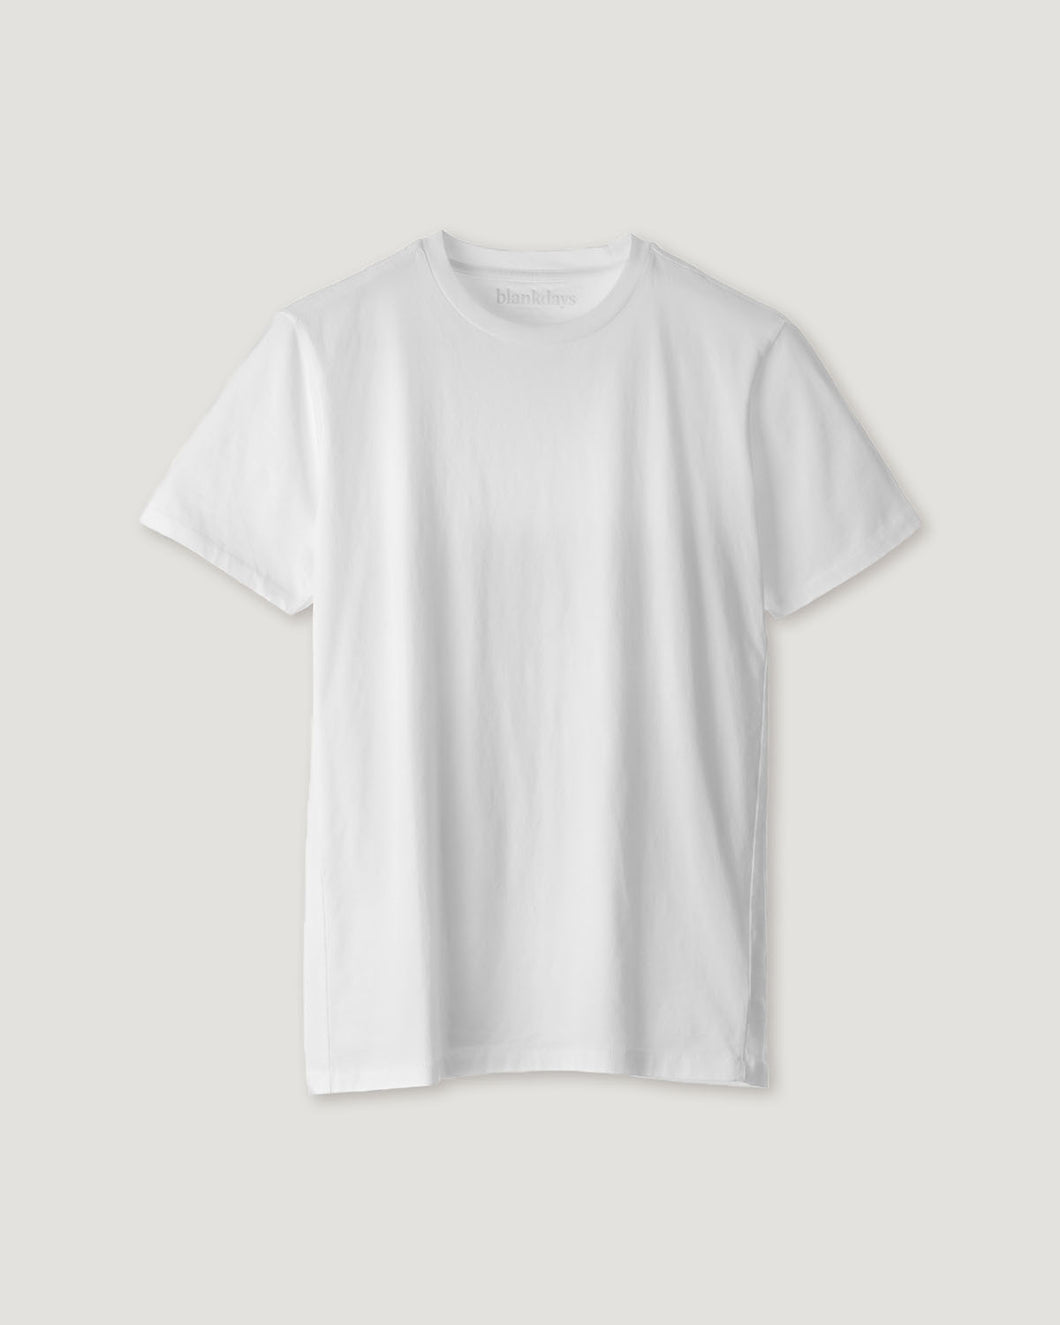 T- SHIRT OFF WHITE-T-shirt-Blankdays